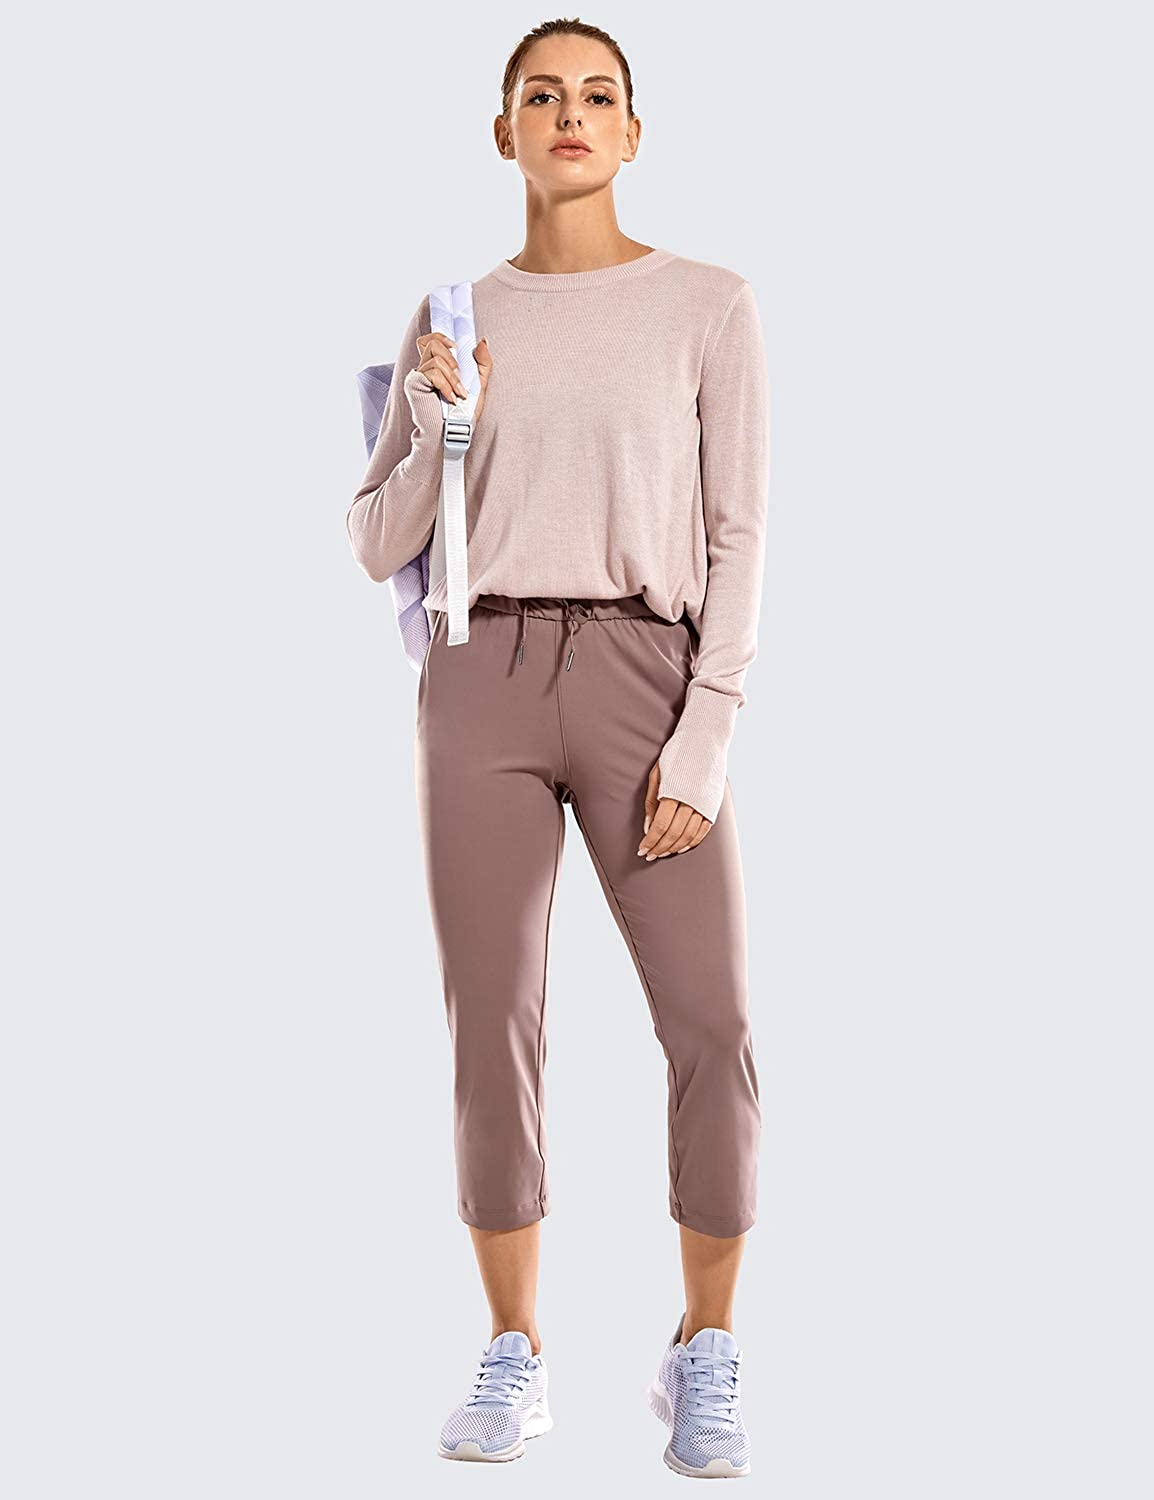 CRZ YOGA Womens On The Travel Mid Rise Capri Joggers Stretch Casual Pants Crop with Pockets